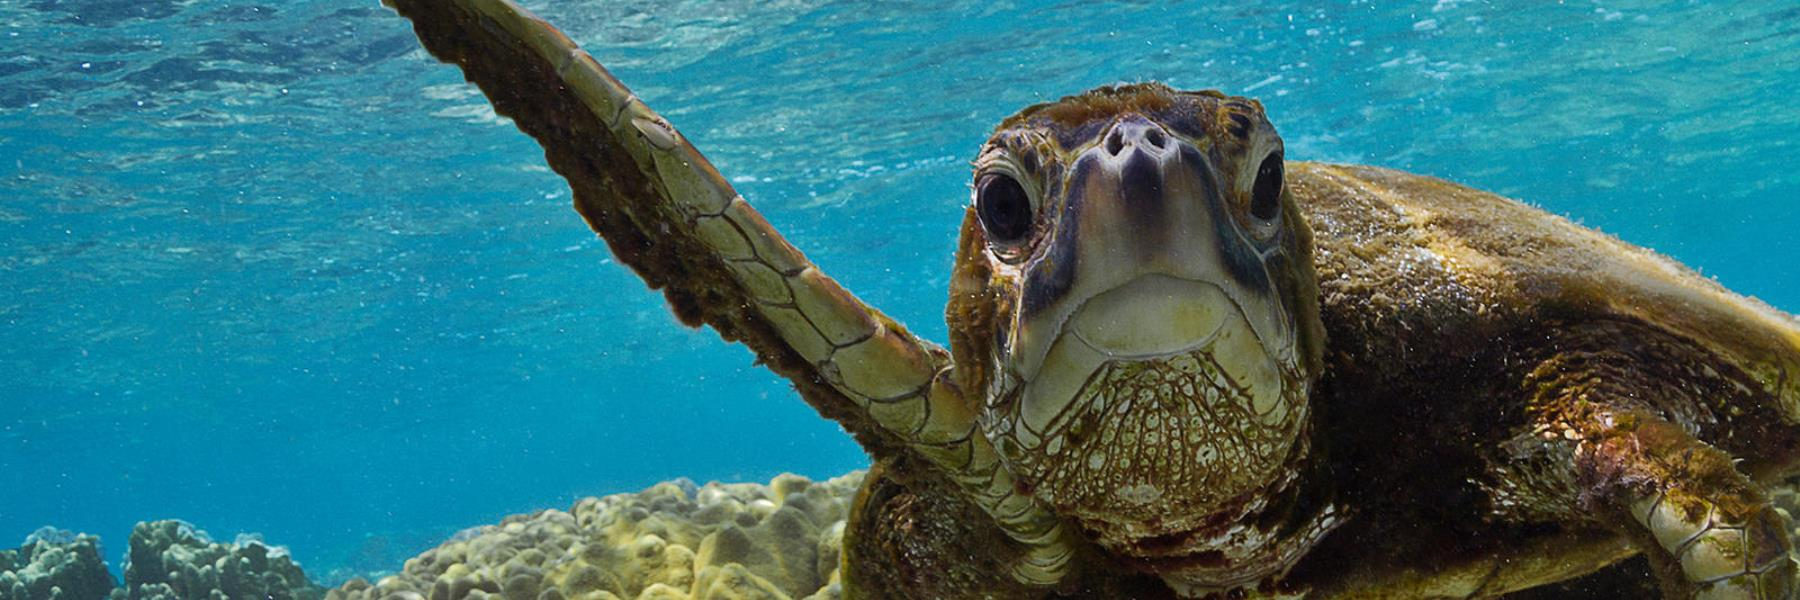 Sea Turtle Season | March 1 – Oct 31